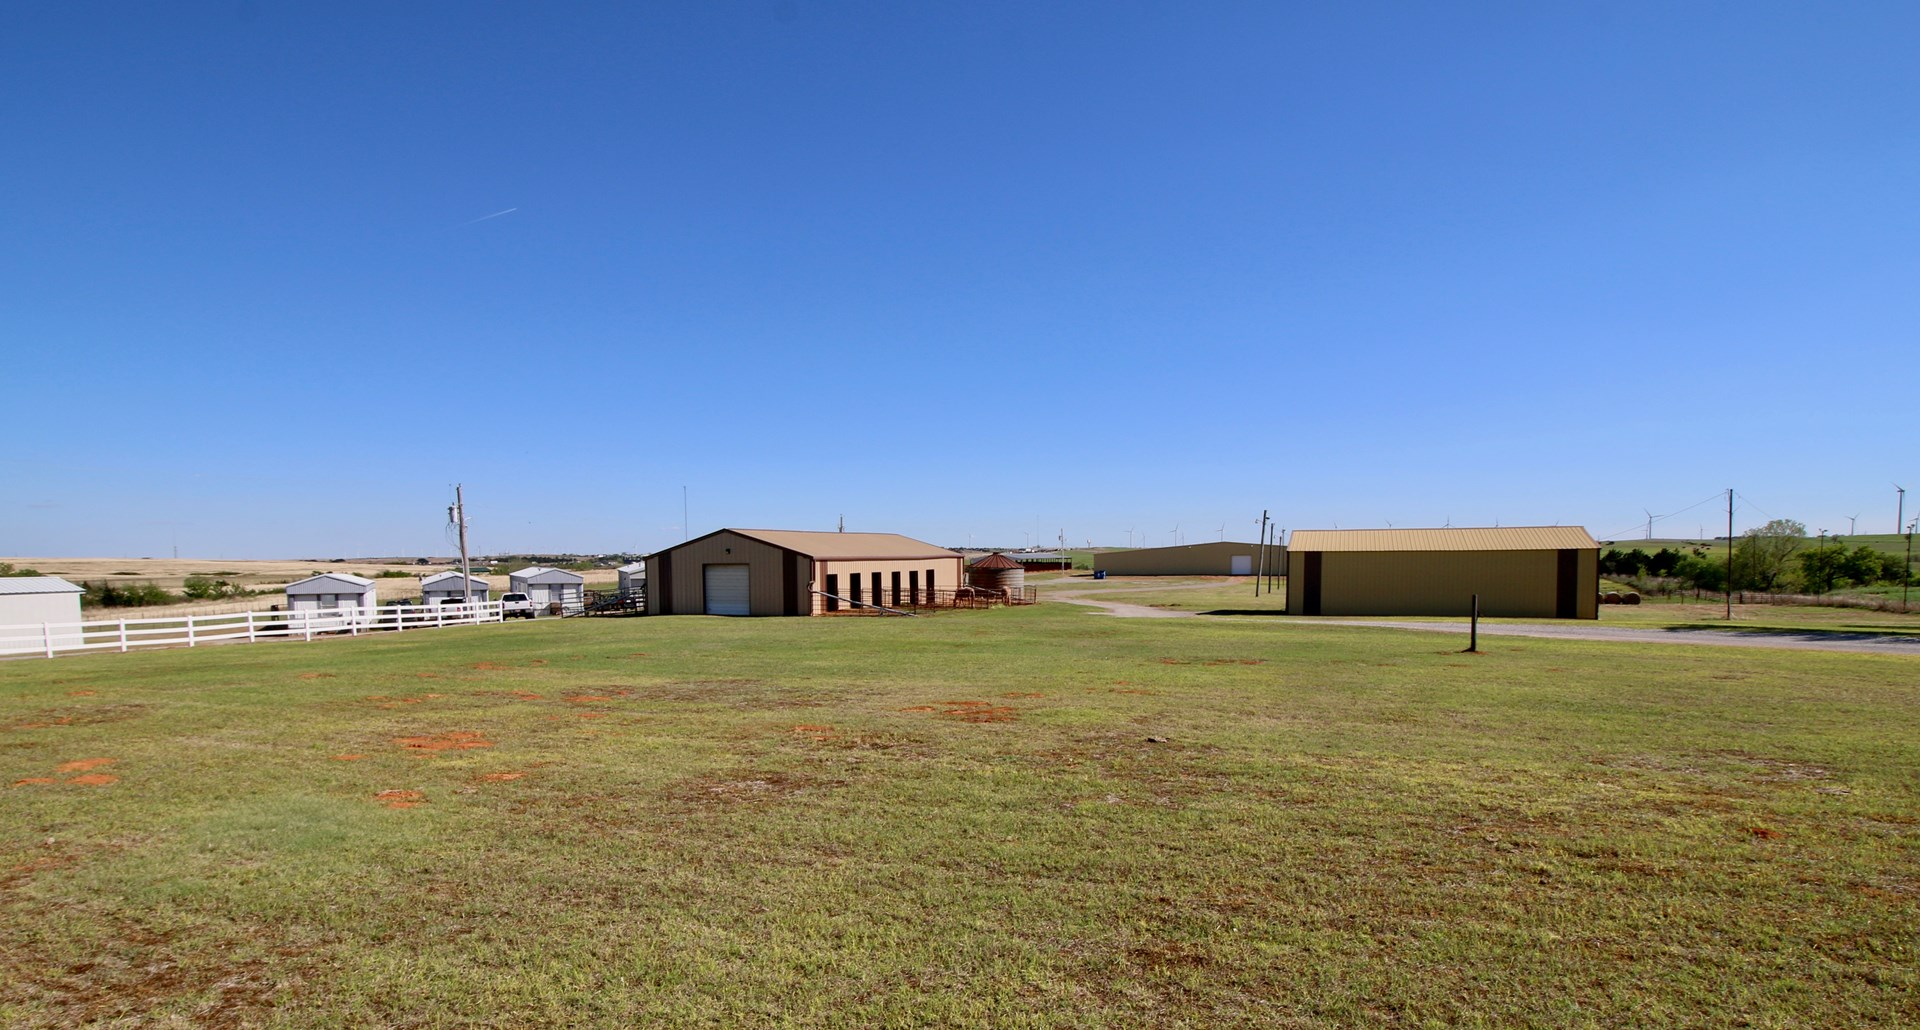 OKLAHOMA PROPERTY FOR SALE INDOOR ARENA MULTI PURPOSE LAND